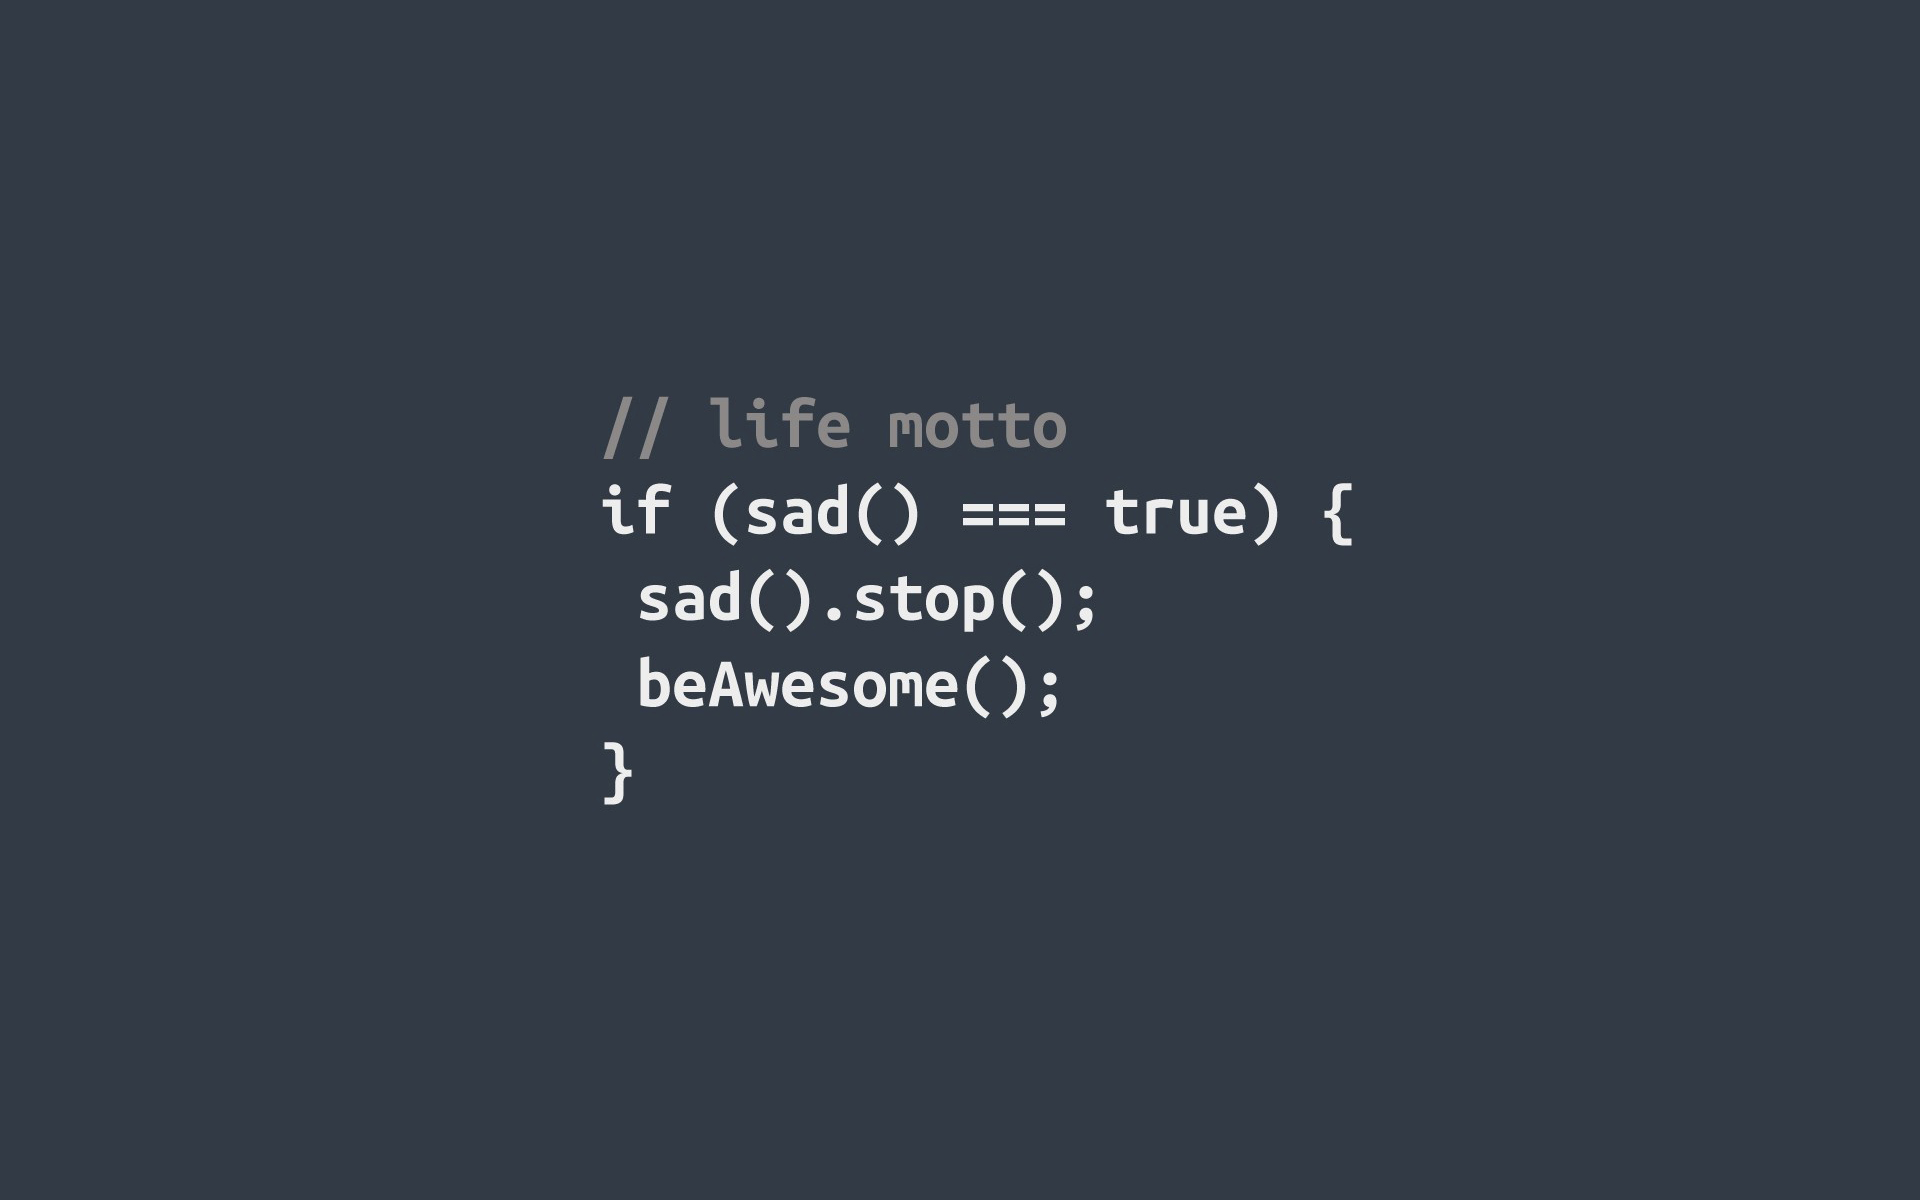 Be awesome php script